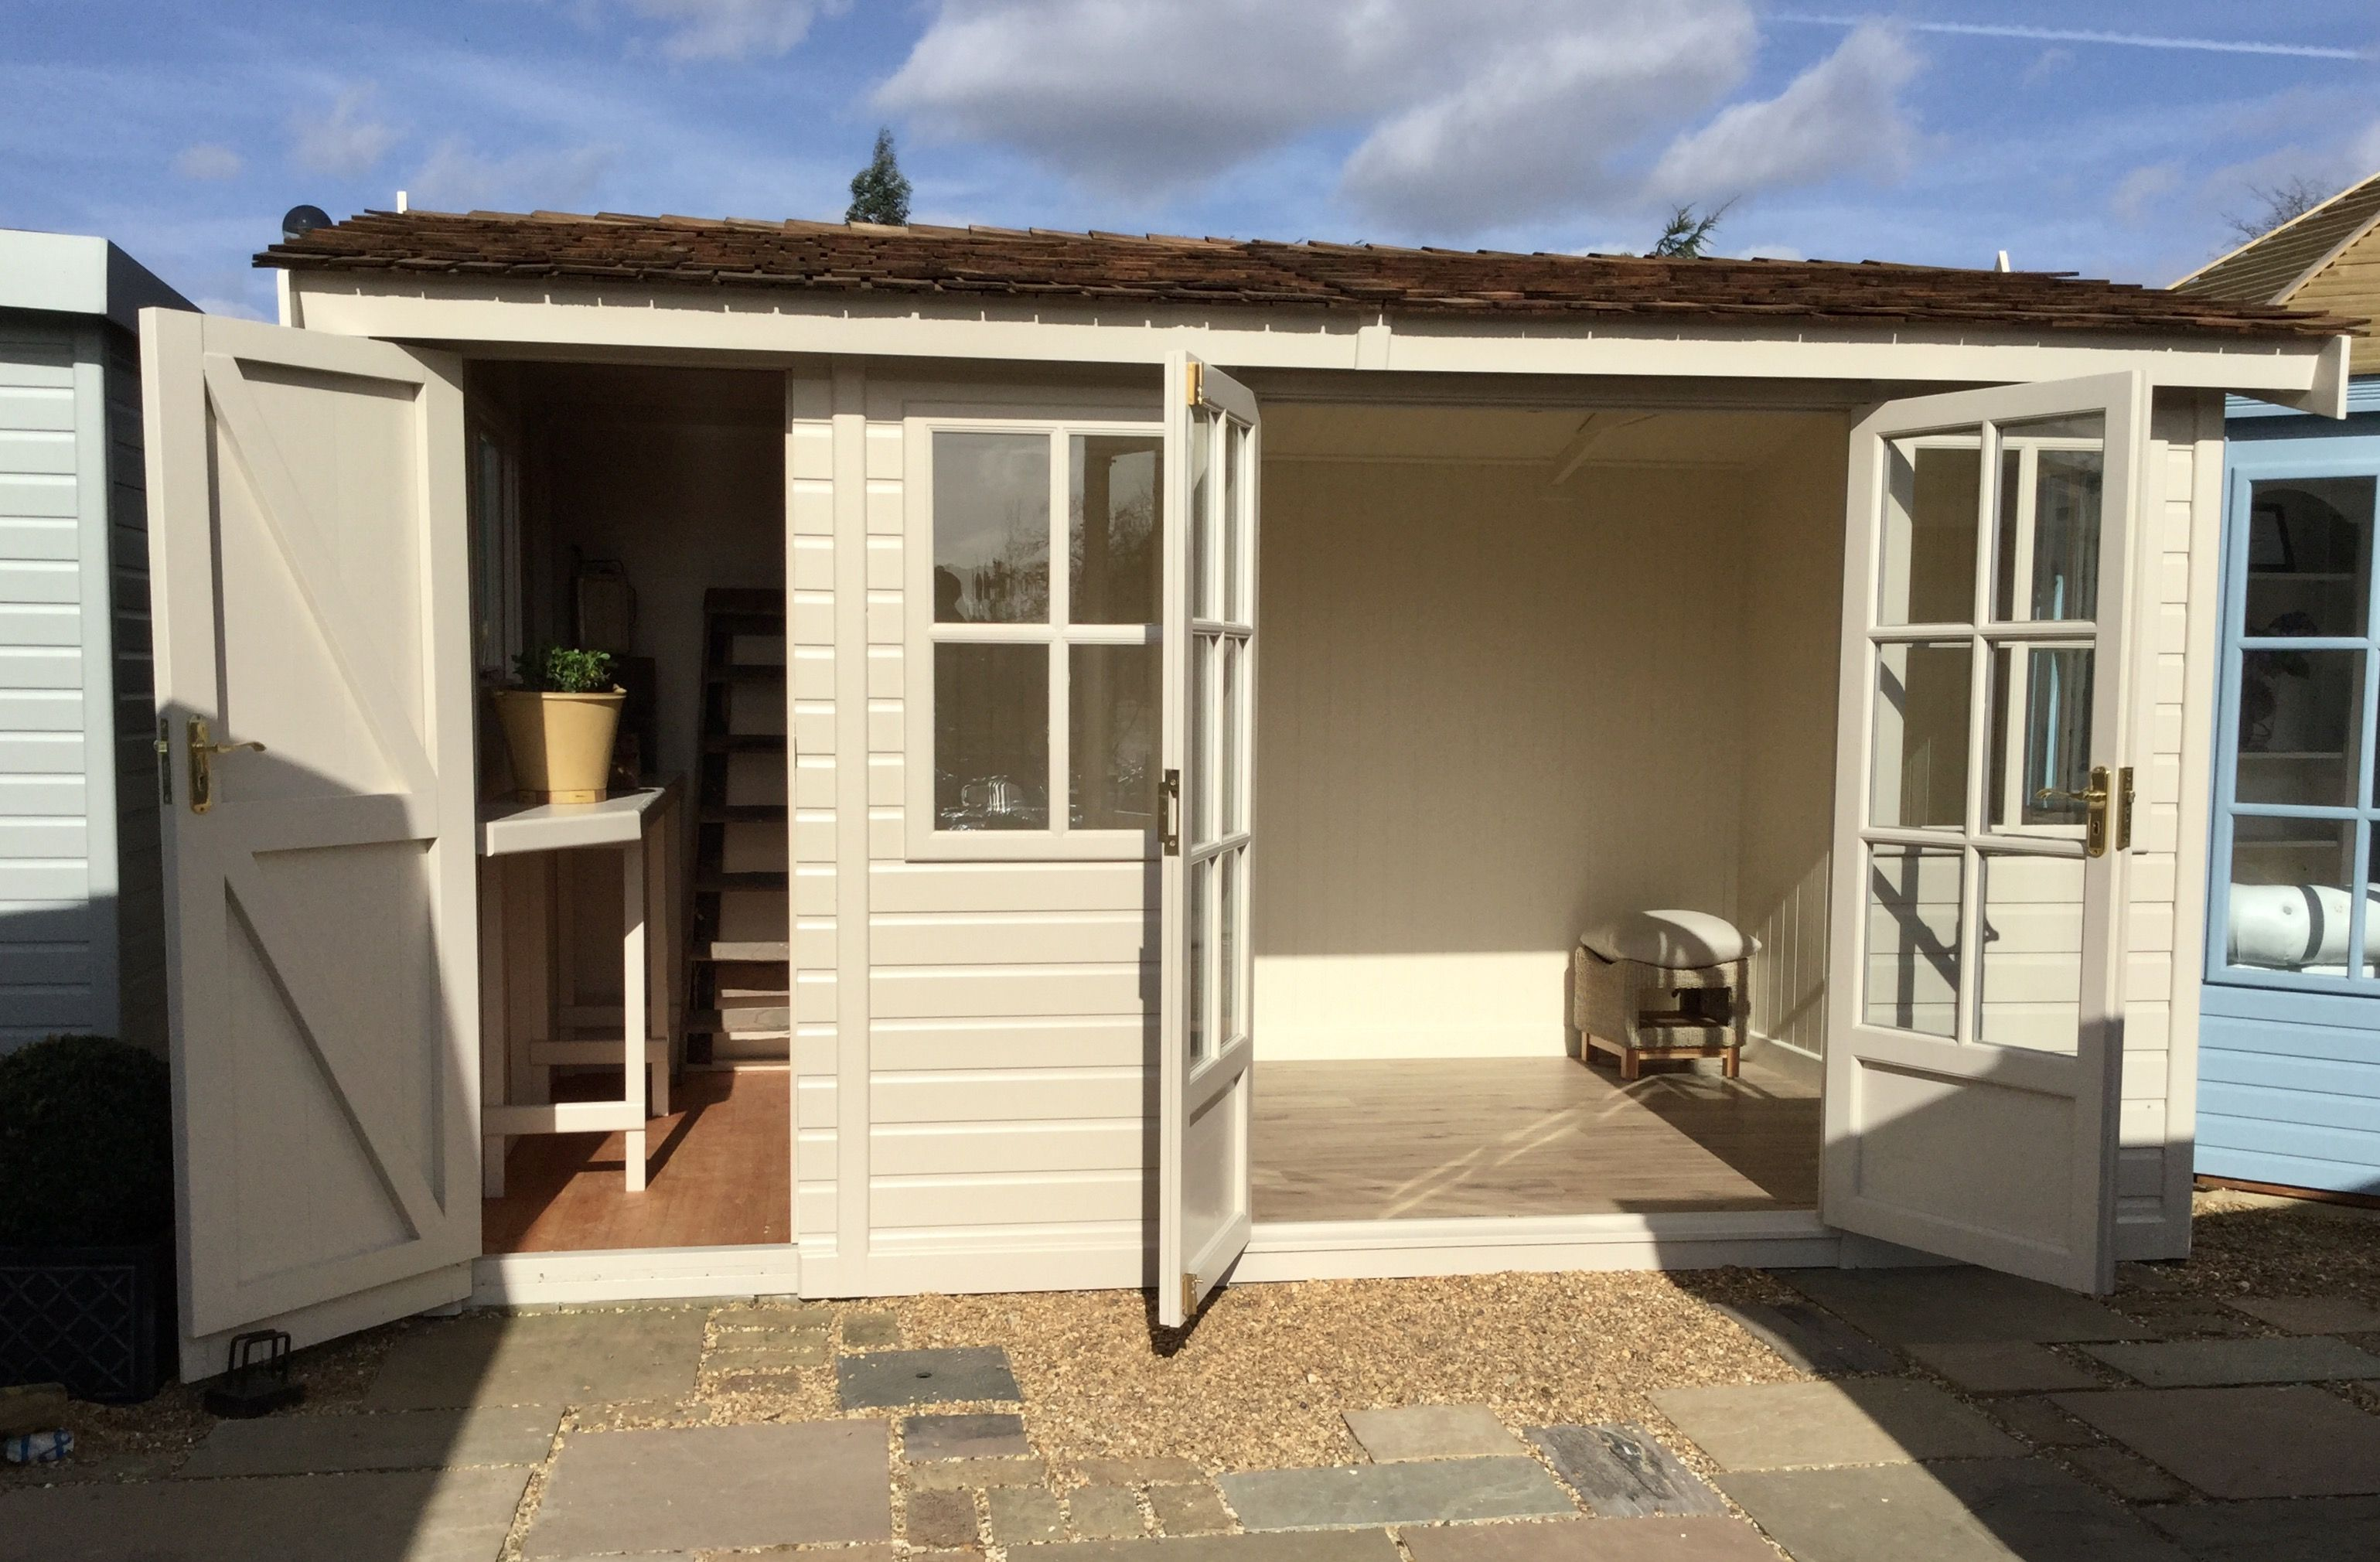 Pavillon X Style : The arley pavilion garden room with integral tidy store